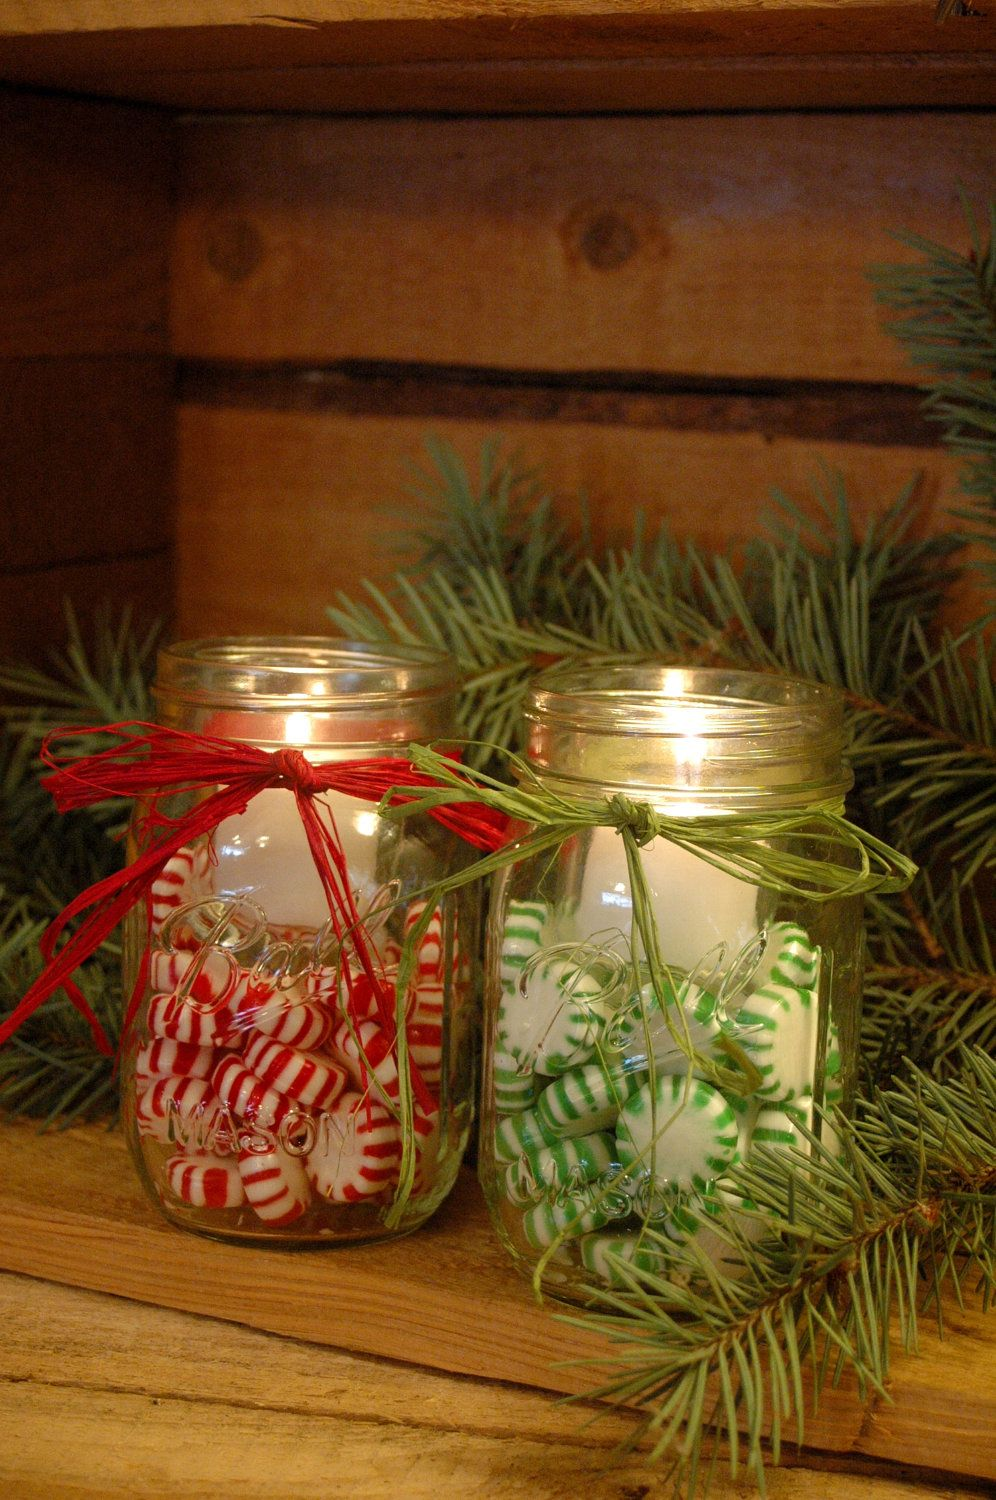 Pin By Aunt Pitty Pat On Holiday Ideas Mason Jar Christmas Crafts Christmas Jars Christmas Mason Jars